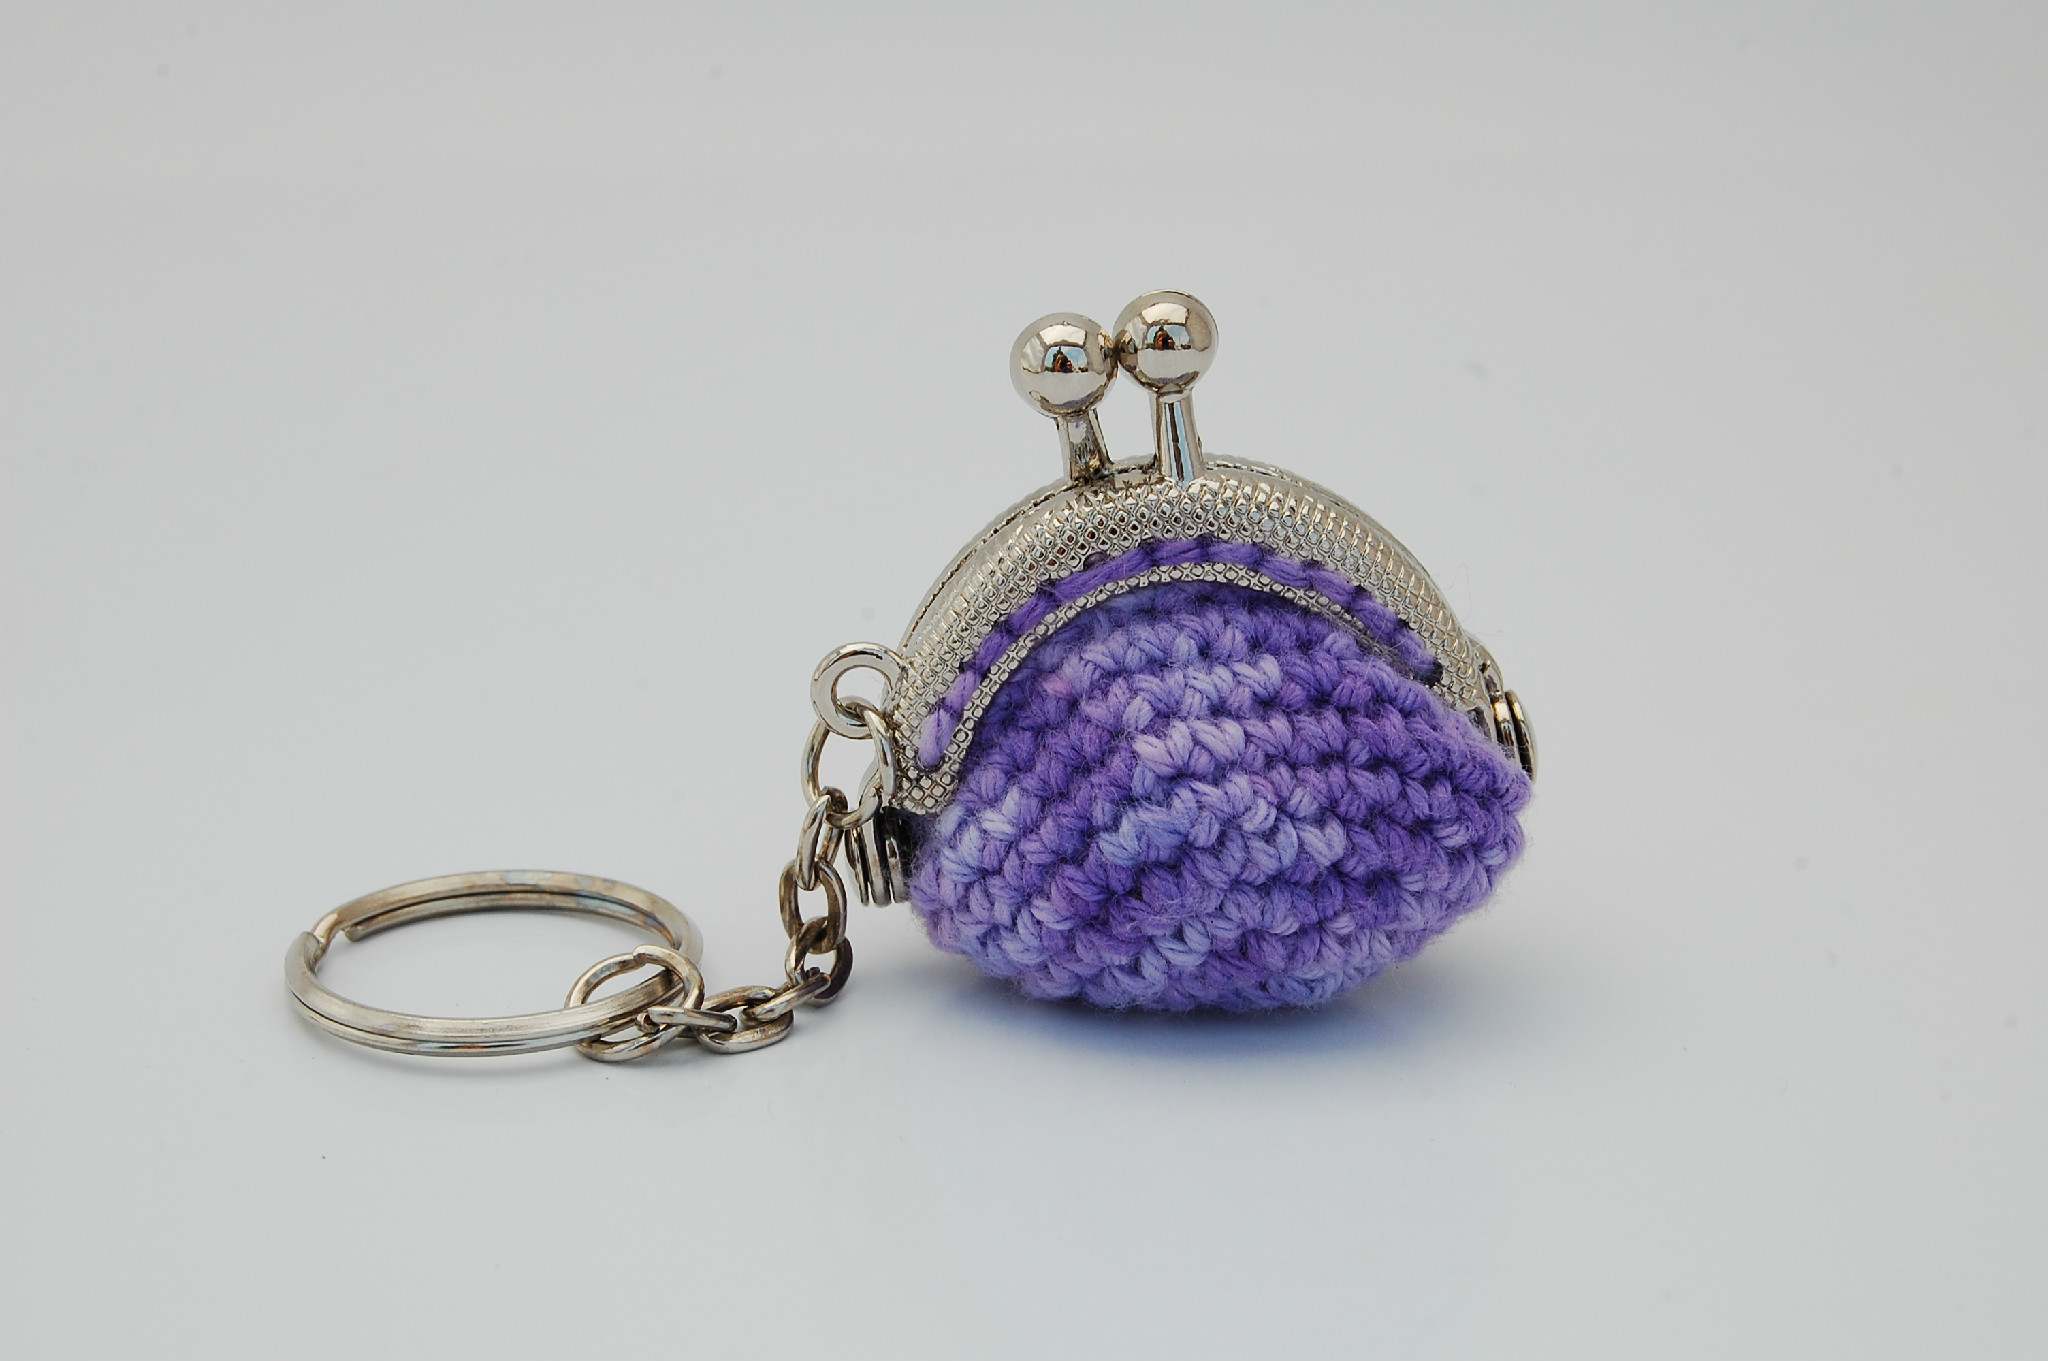 Key Chain Free Crochet Pattern